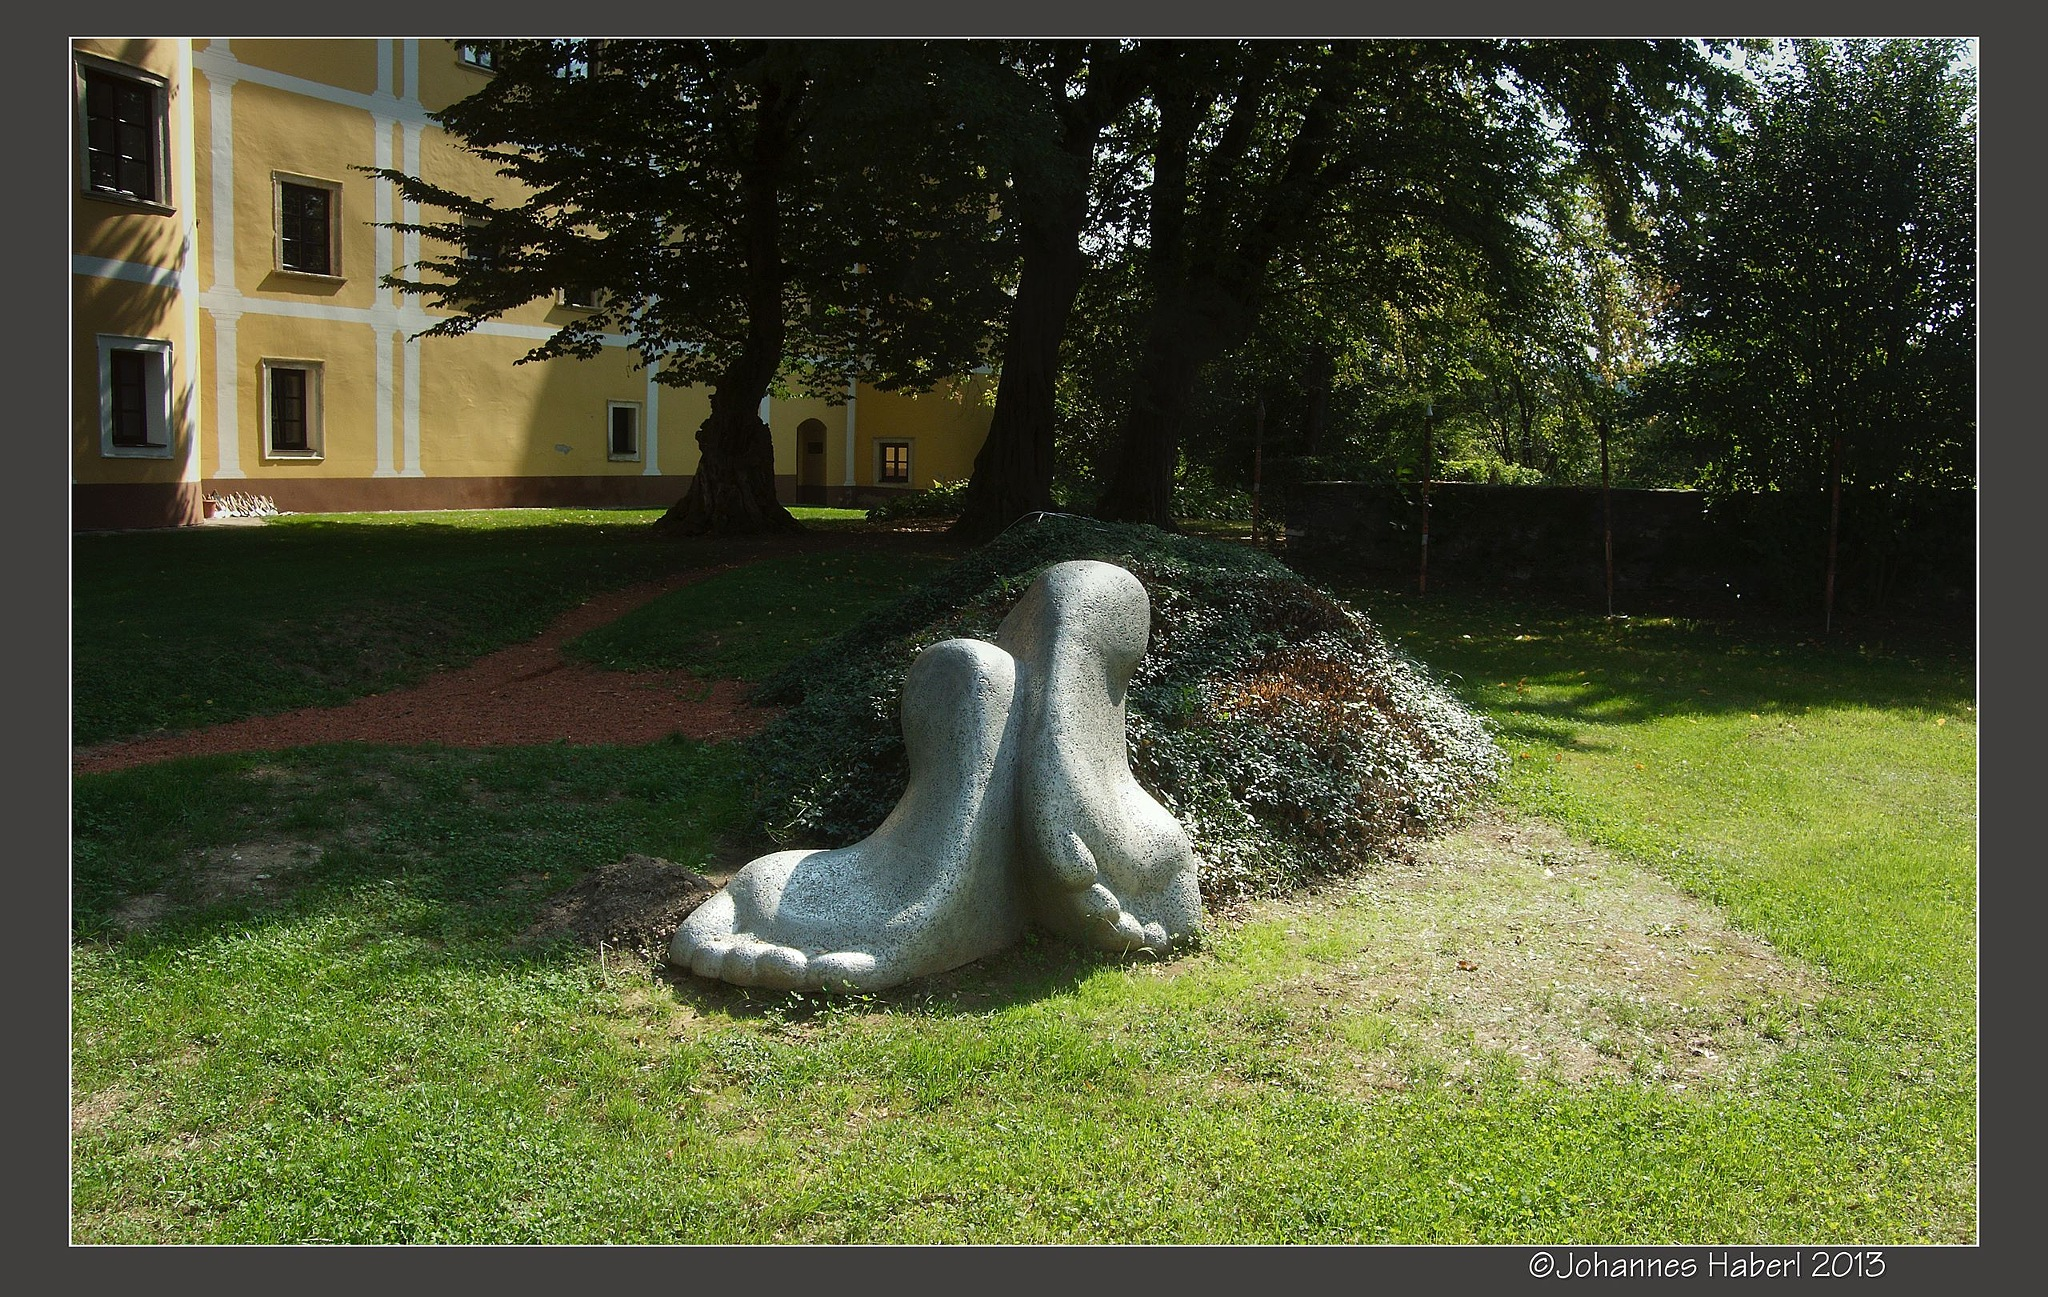 land art - sculpture in a park by Johannes Haberl